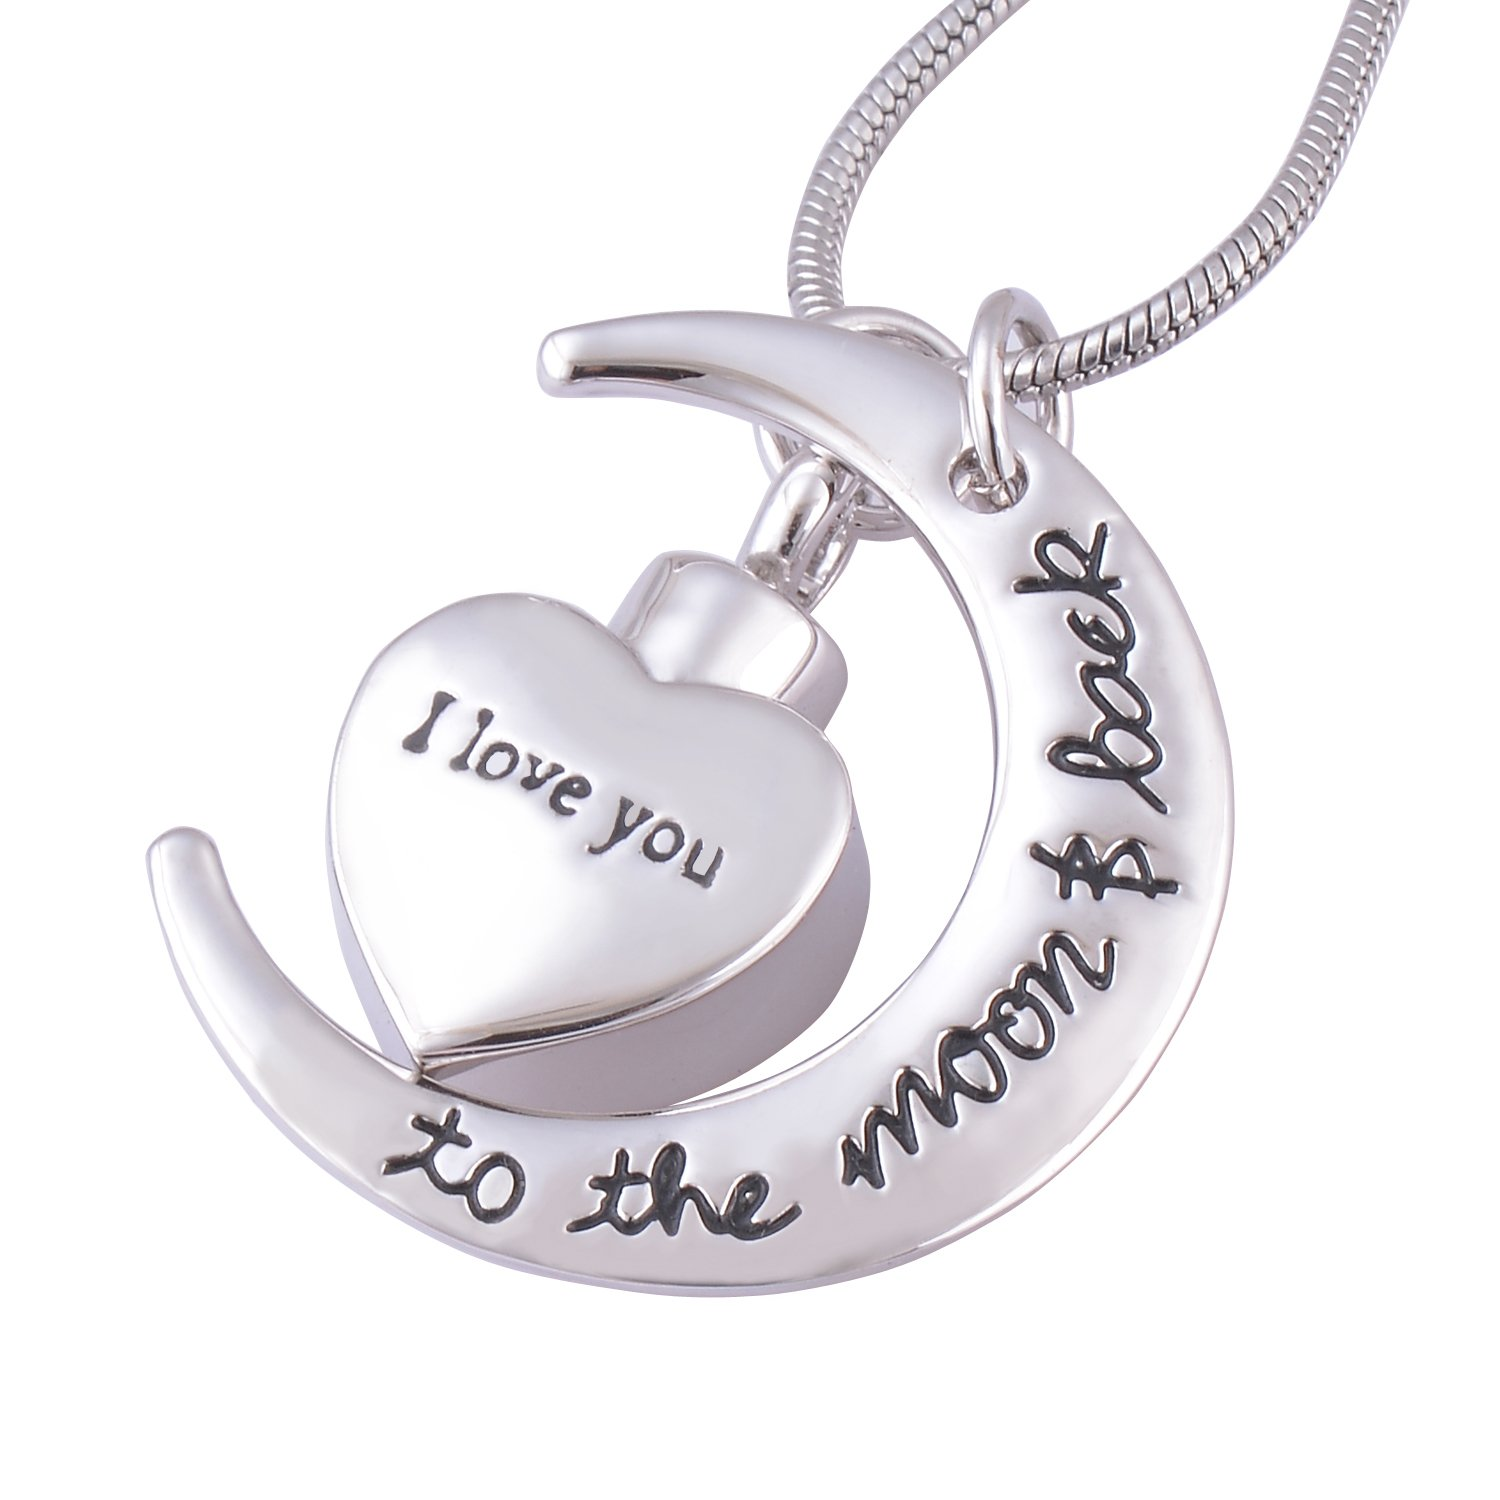 and ruby keepsake bag engraved memorial quot with wholesale funnel product urn crystal eternally pendant jewelry cremation bottle grandpa necklace gift loved